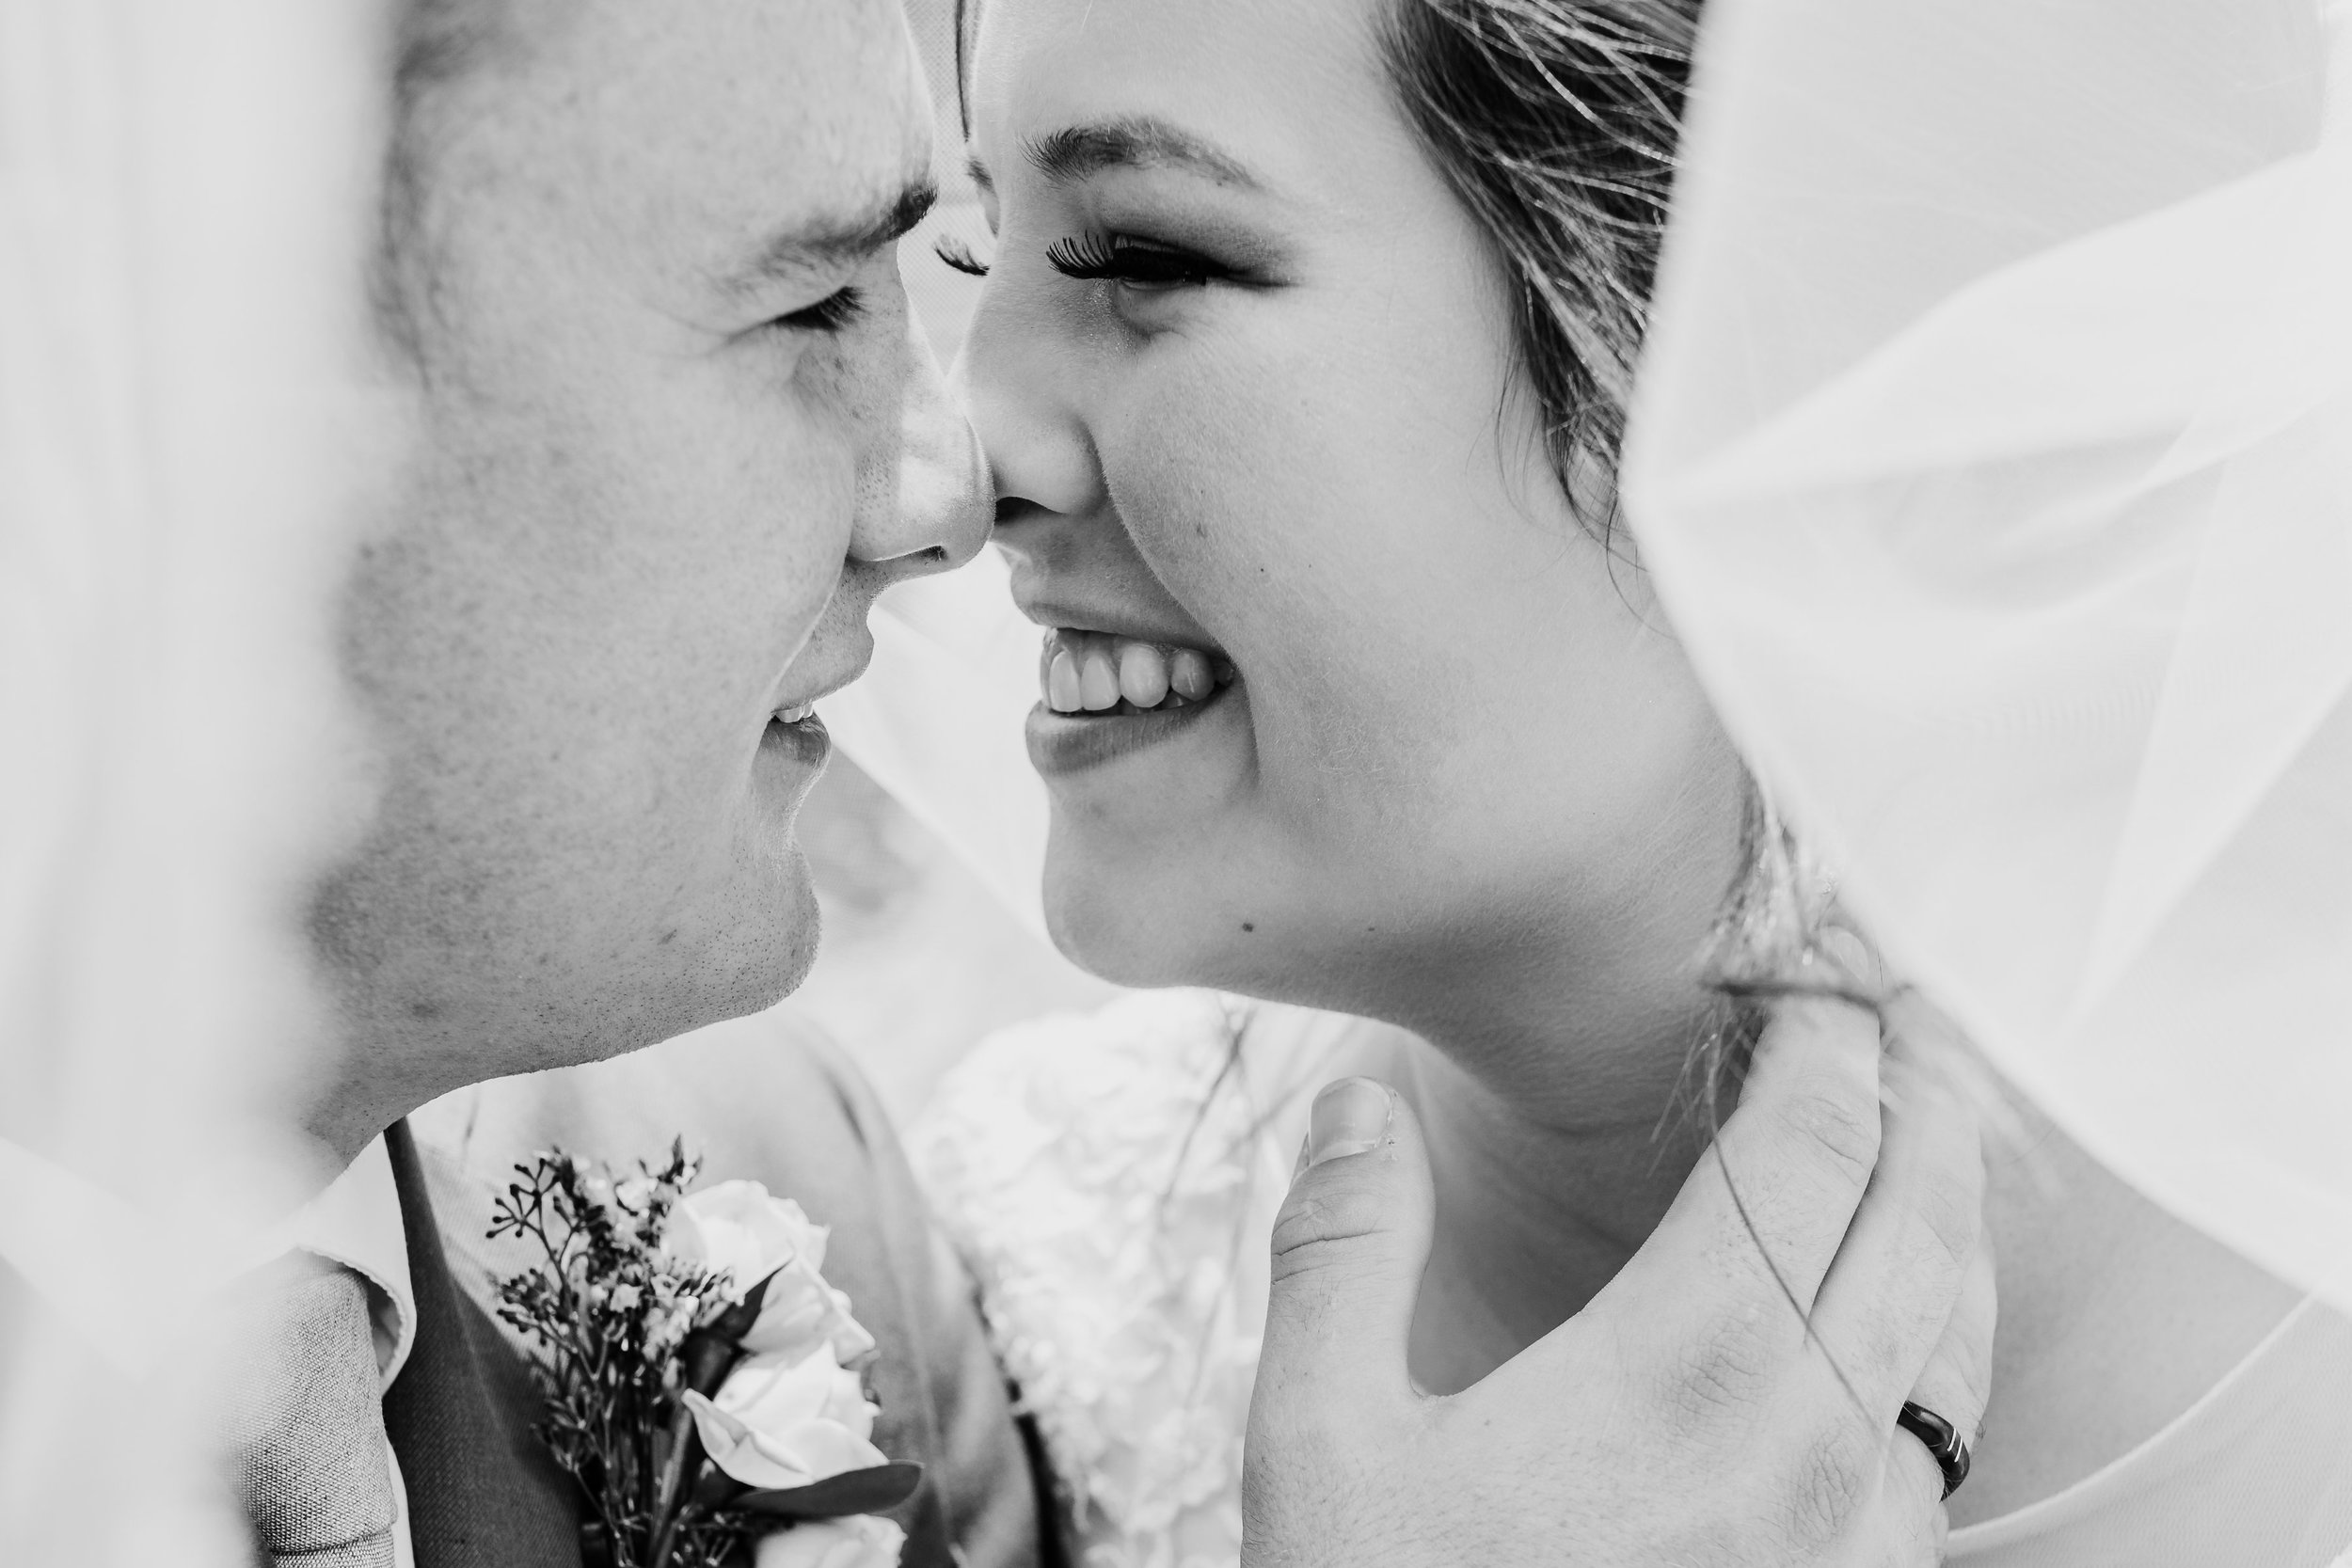 professional las vegas wedding photographer veil laughing playful touching noses